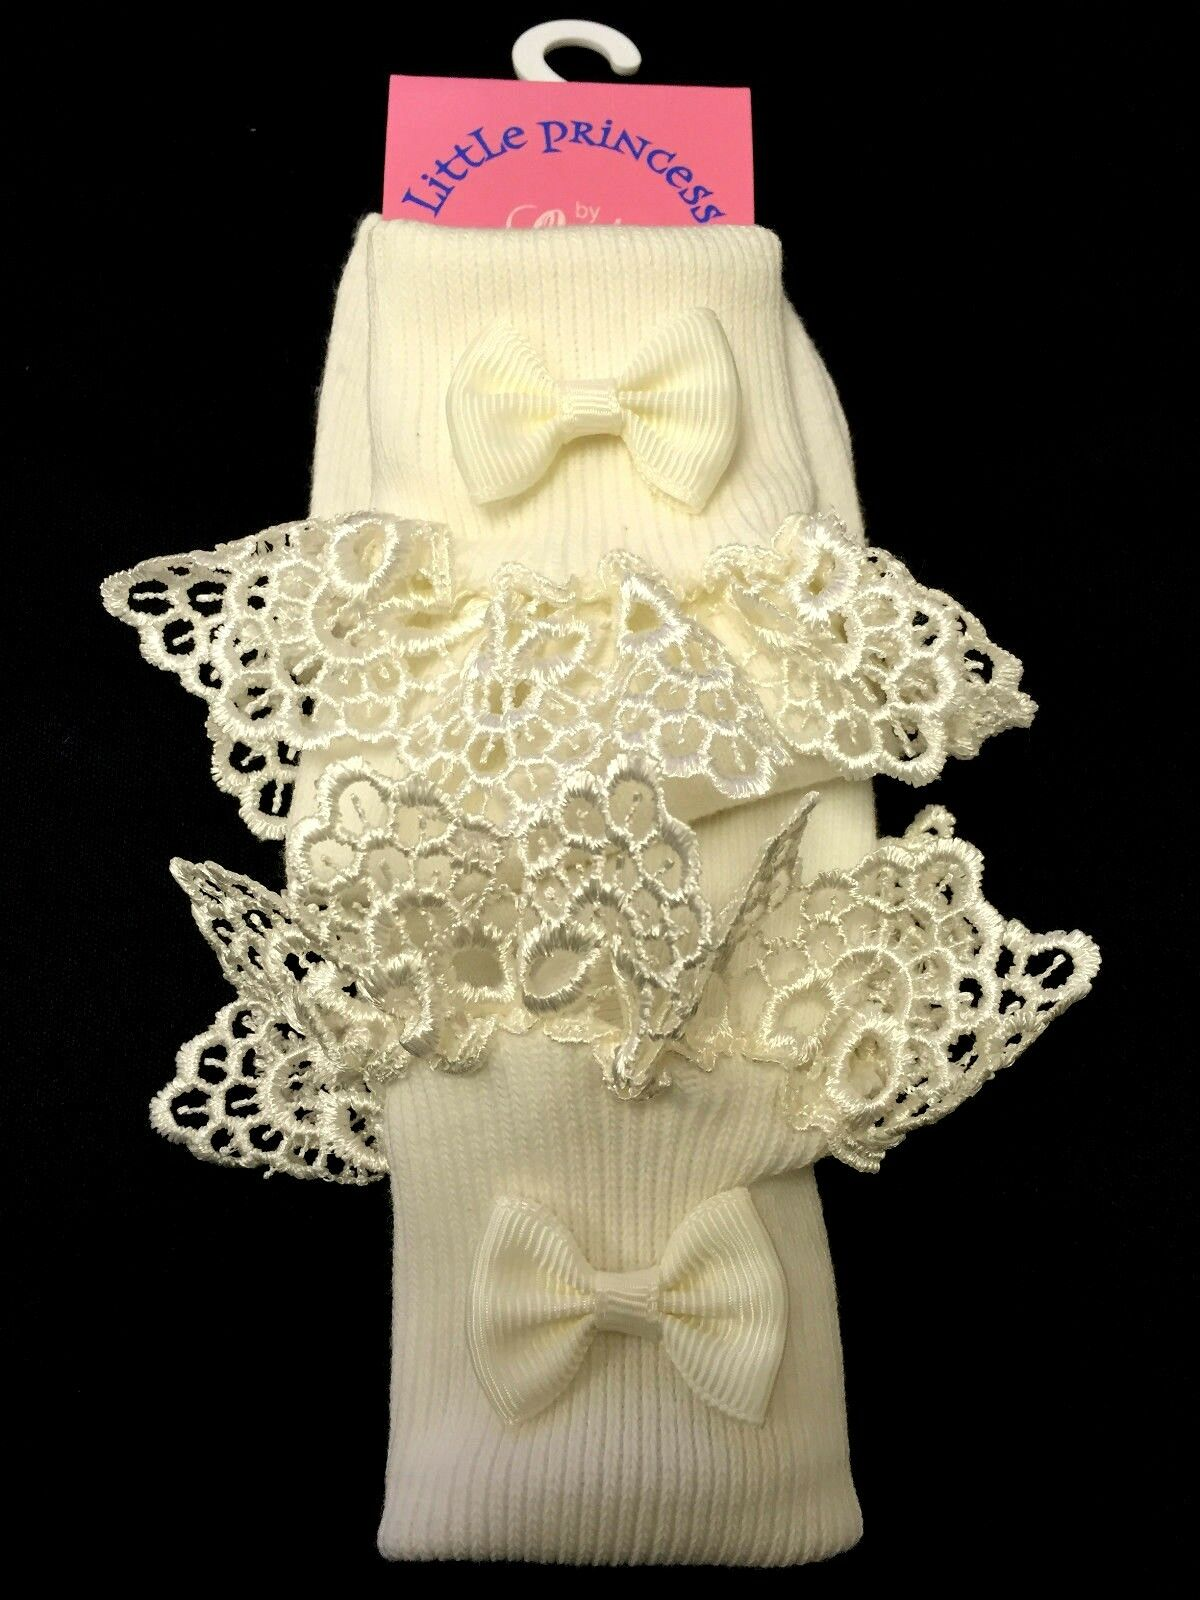 GIRLS IVORY FRILLY ANKLE BOW OCCASION SOCKS EMBROIDERED WEDDING PARTY ALL SIZES